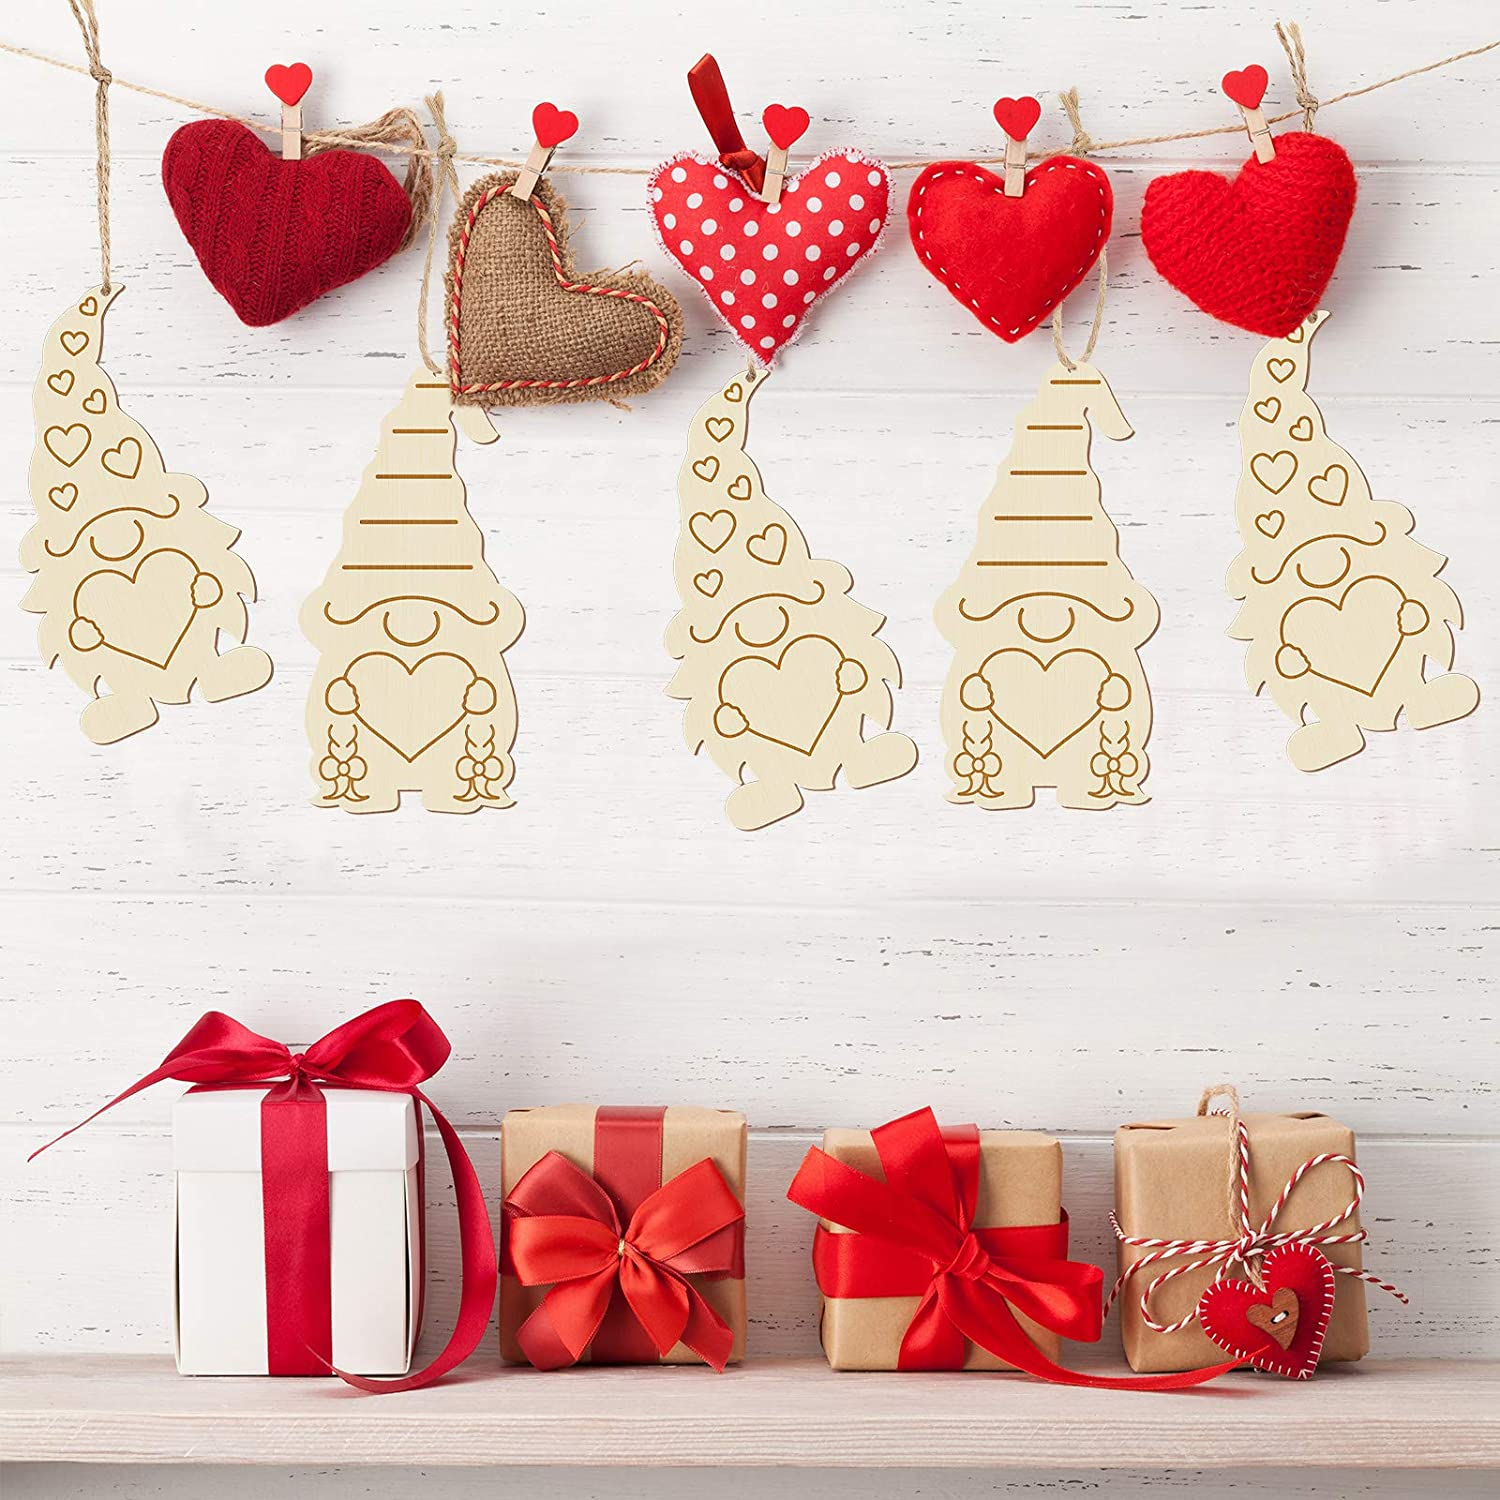 Wooden Gnome Hanging Ornaments Valentine Gnome Wooden Slices DIY Gnome Ornaments Valentine Wooden Hanging Ornaments for DIY Craft Making Painting Valentine Decorations 12 Pieces